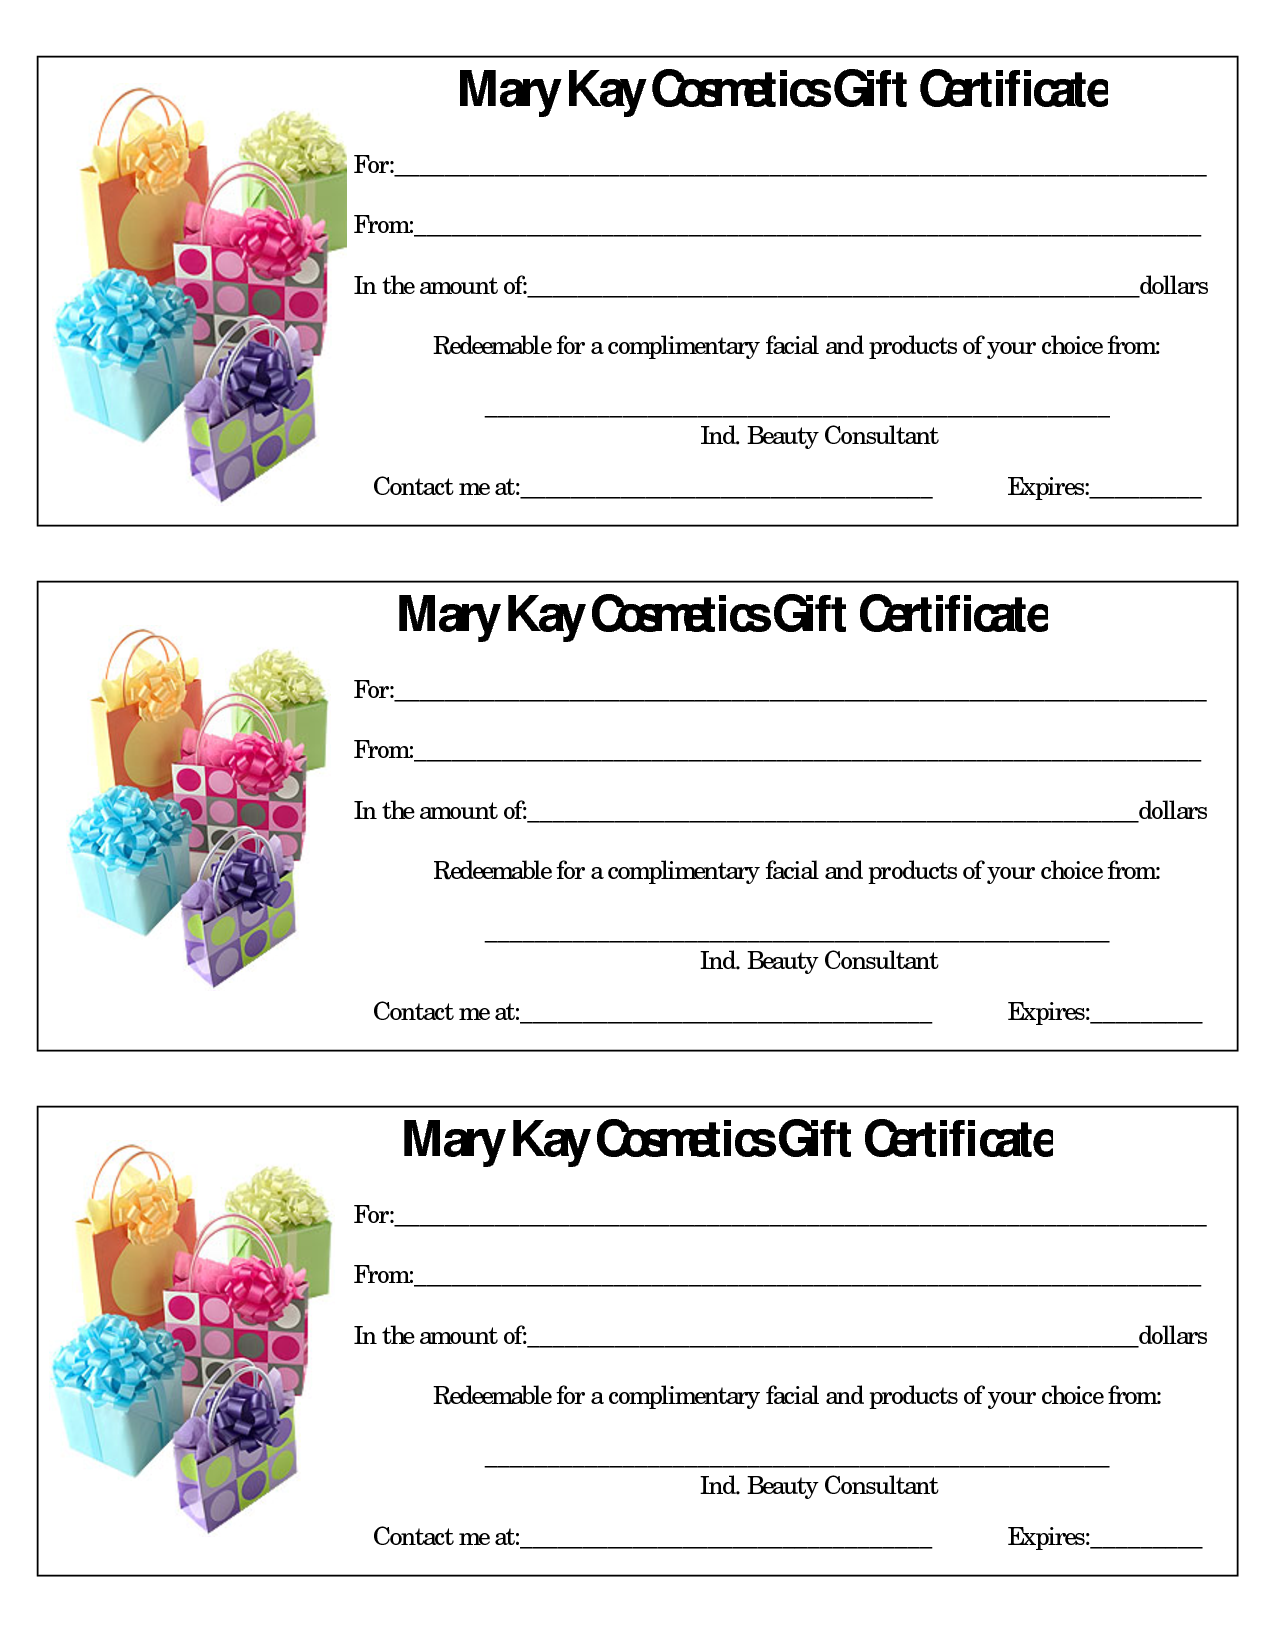 Mary kay certificate as a mary kay beauty consultant i can help gift certificate wording 7 gift certificate wording examples sample of invoice 6 gift voucher wording sample of invoice words anywhere vinyl lettering and yadclub Gallery